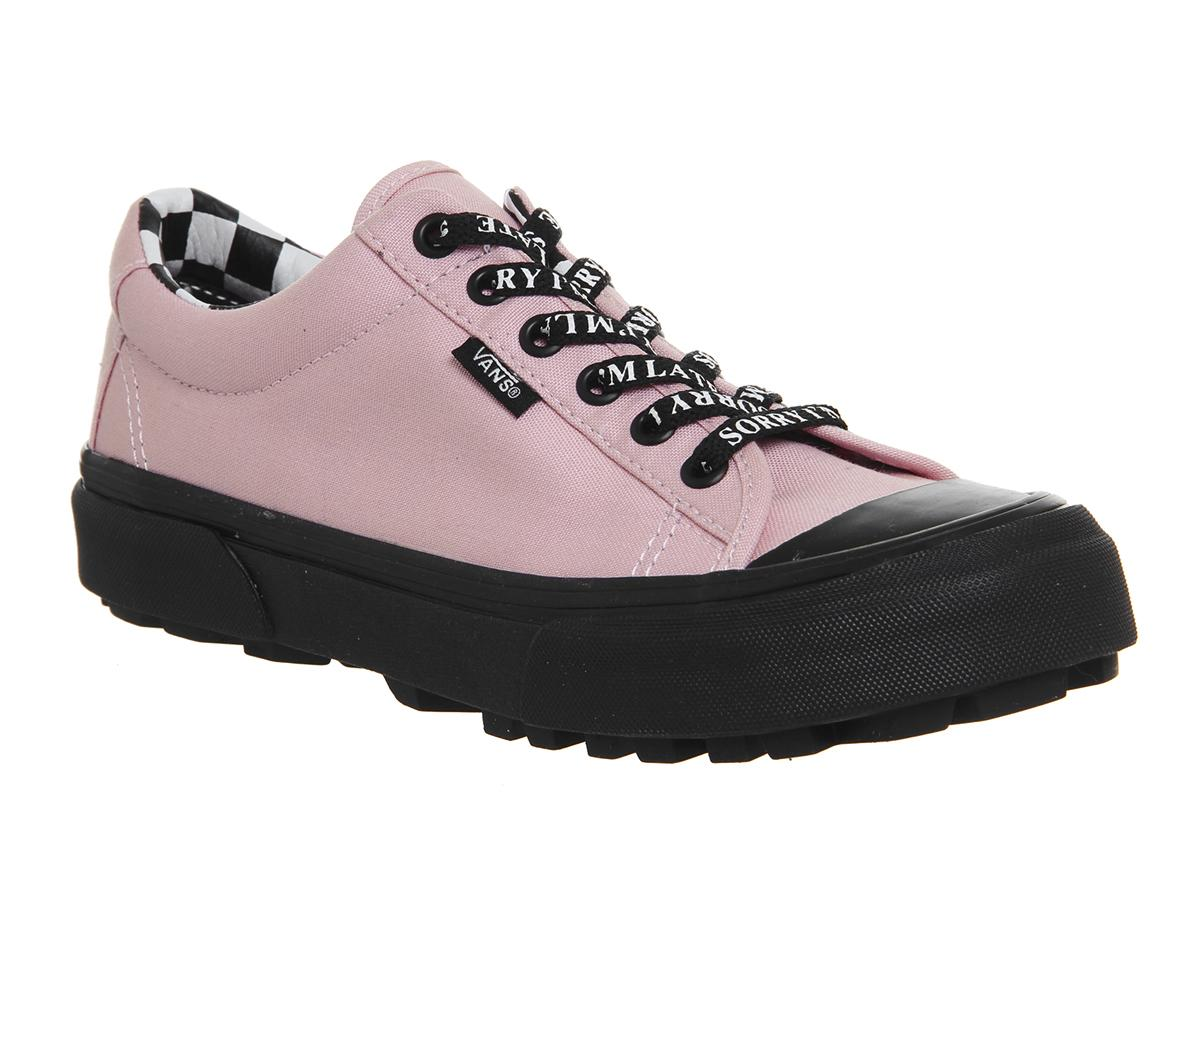 347bc971c5a4a4 Vans Style 29 Trainers Lazy Oaf Almond Blossom Black - Hers trainers